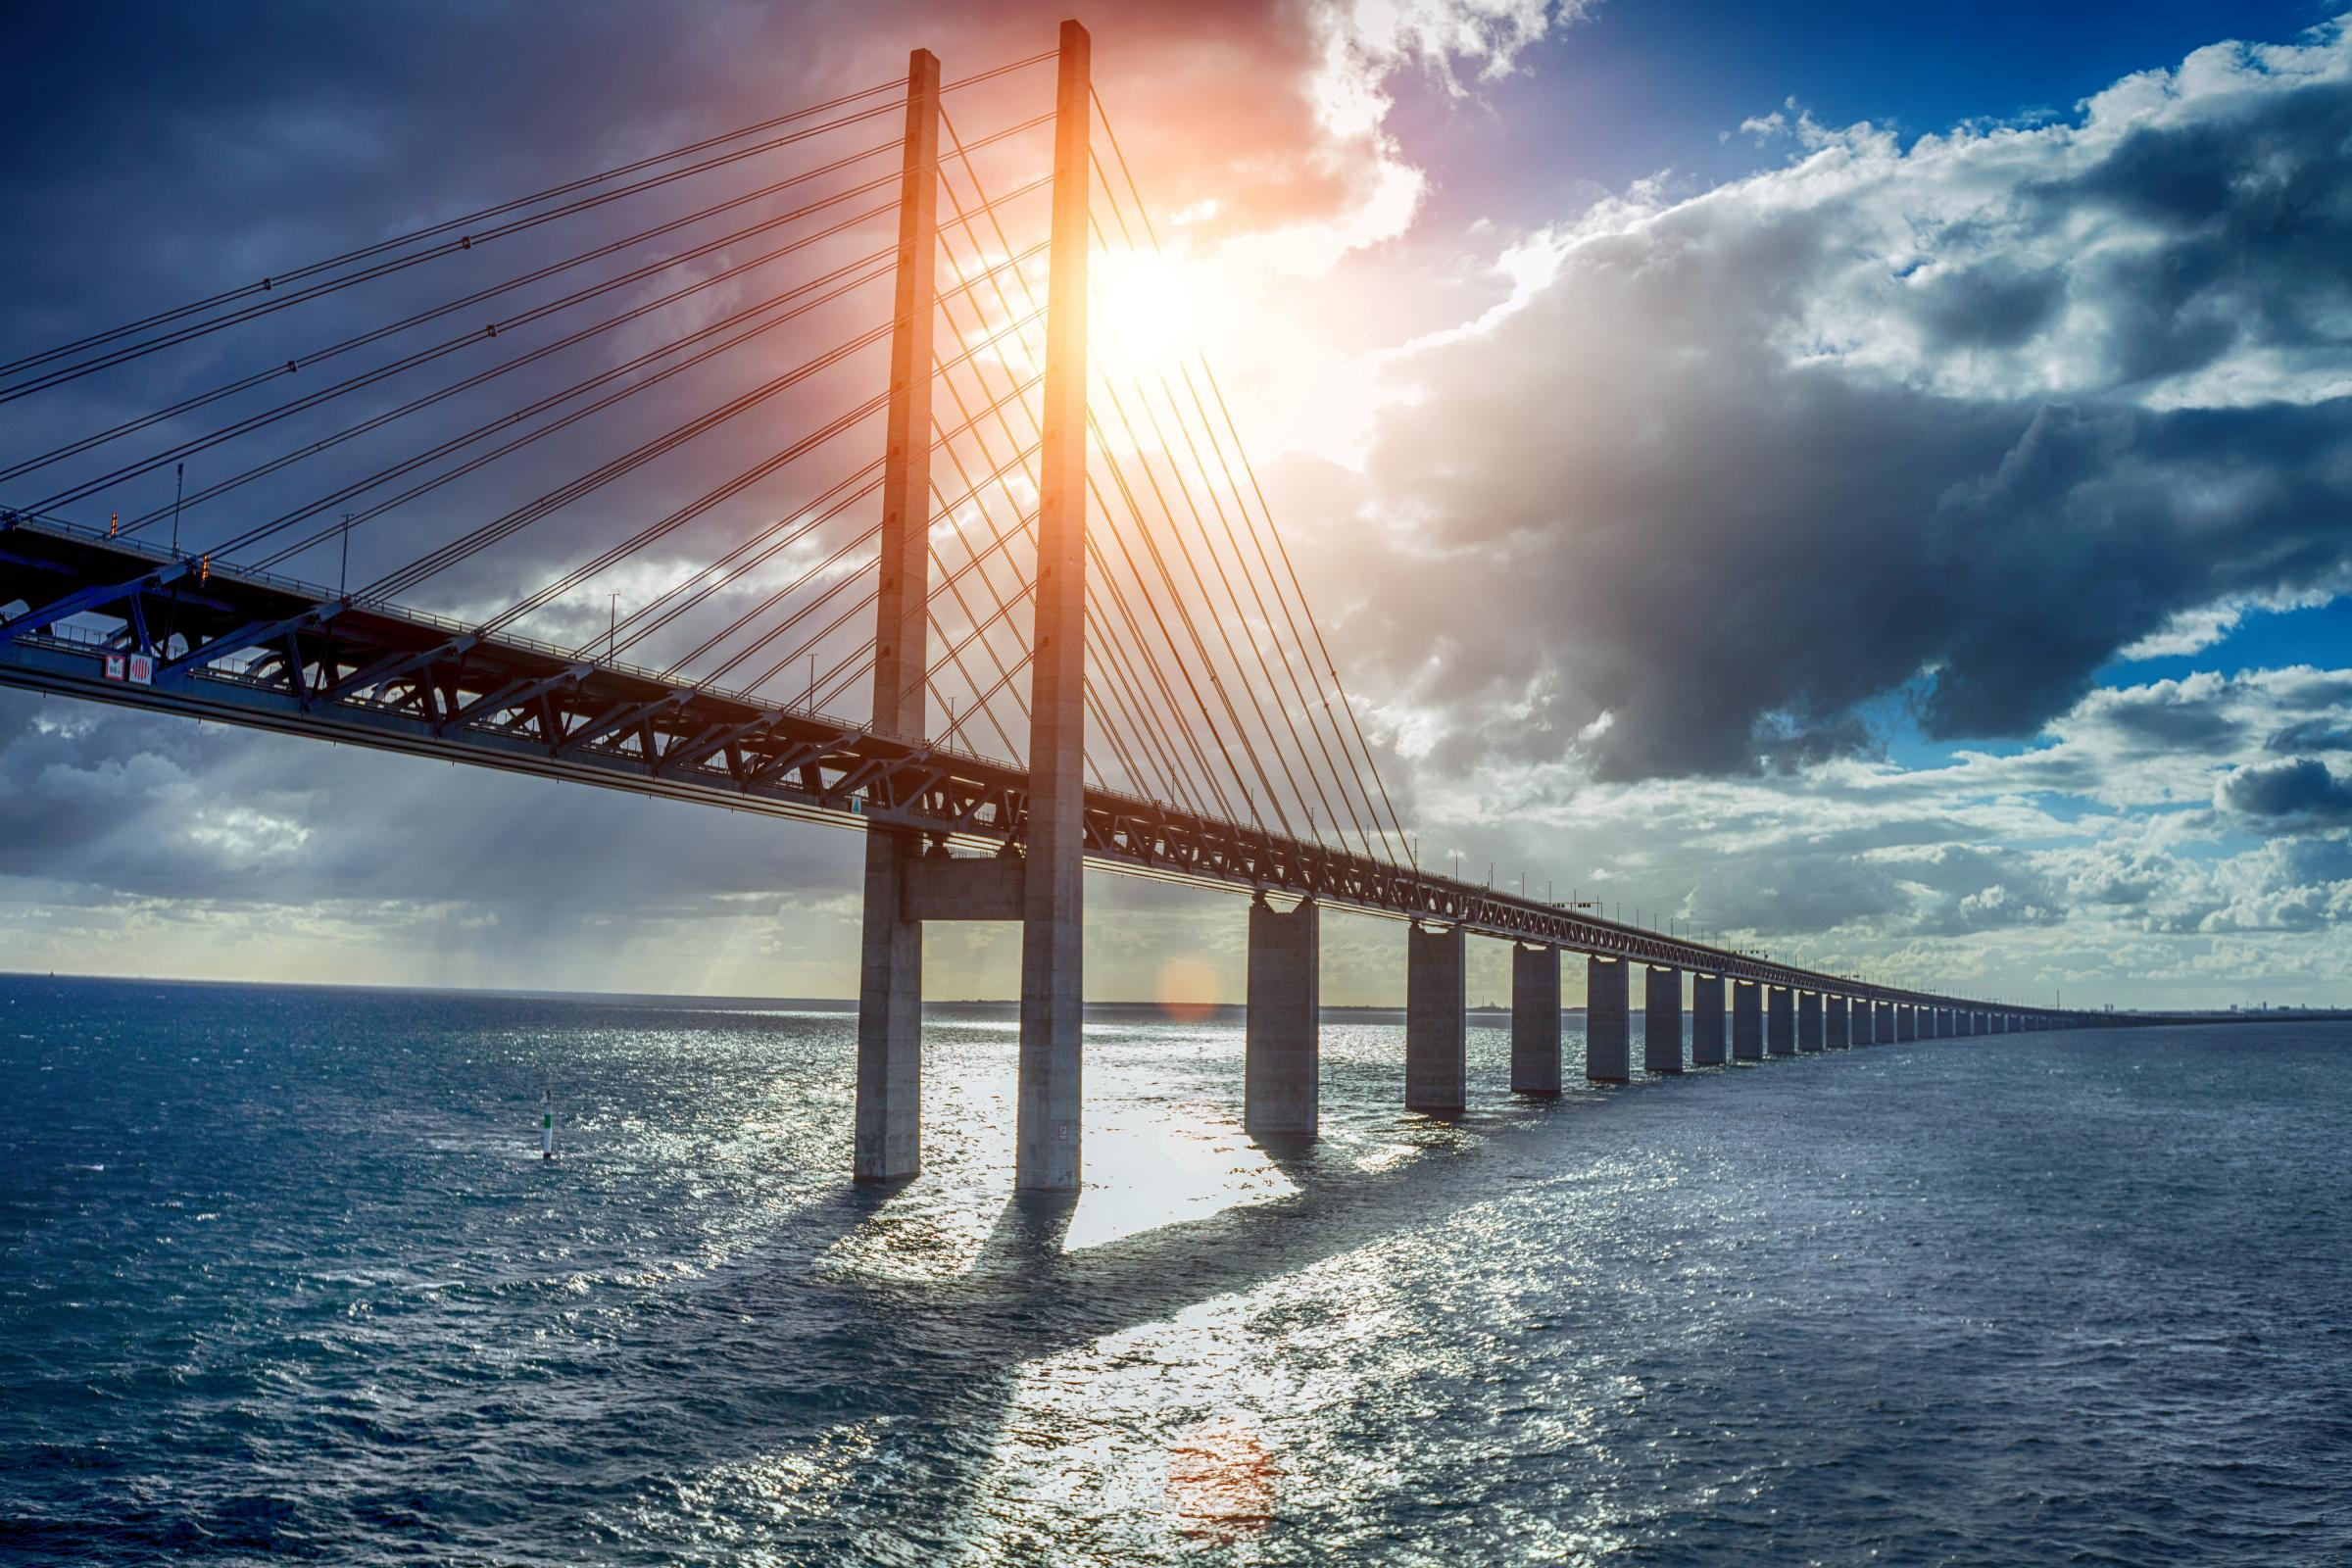 The Øresund Bridge, between Sweden and Denmark, is Europe's longest combined road and rail bridge